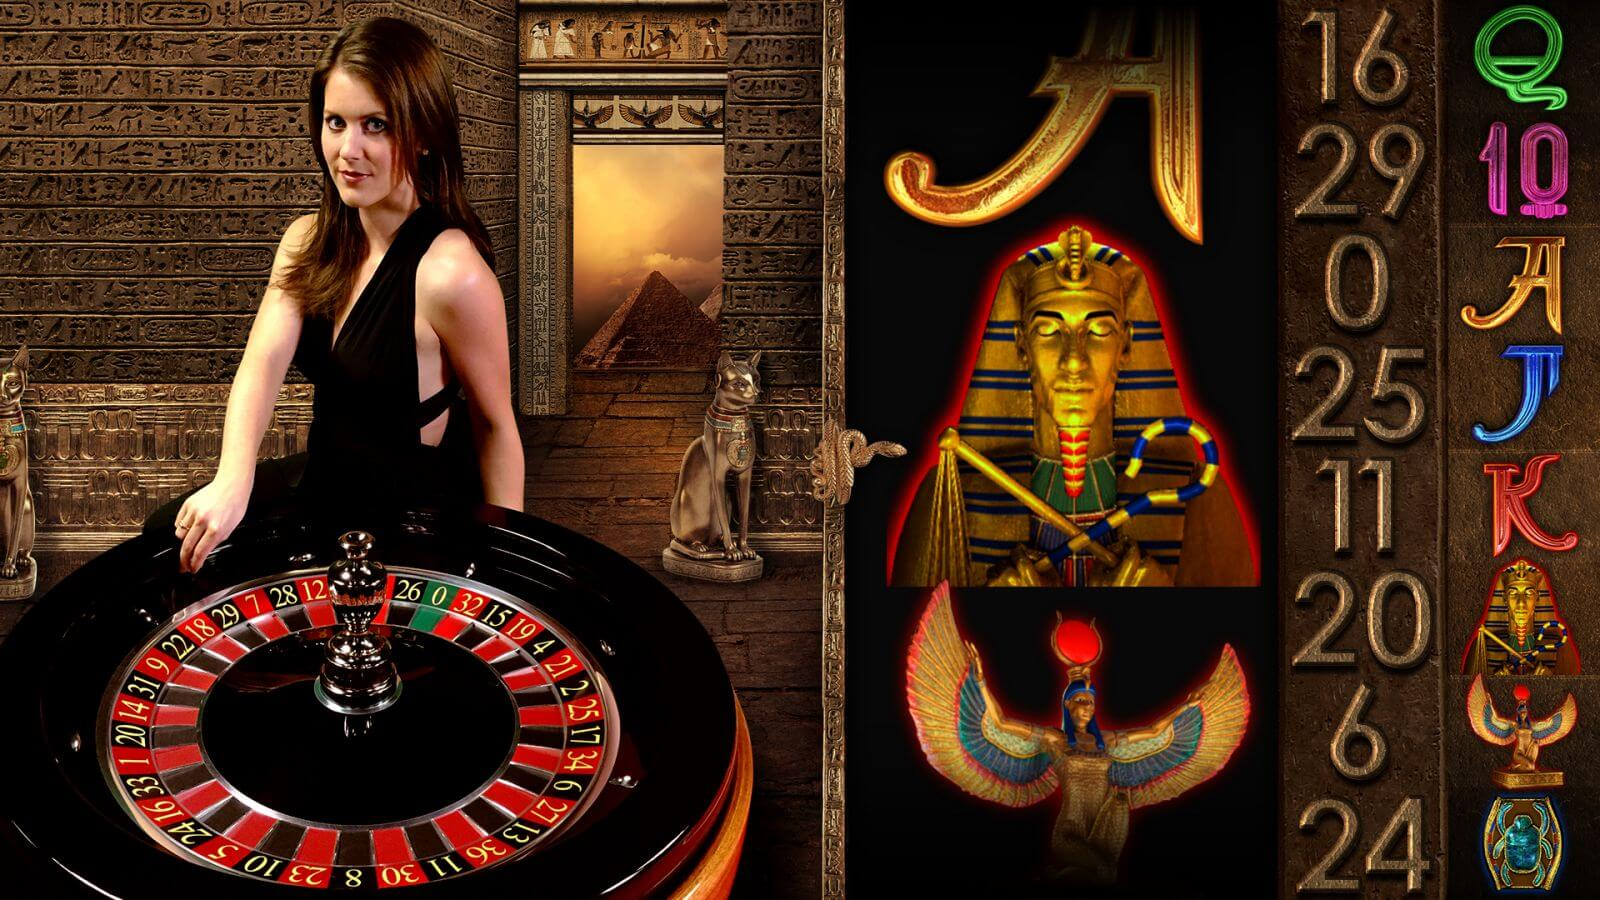 casino online spielen book of ra european roulette casino